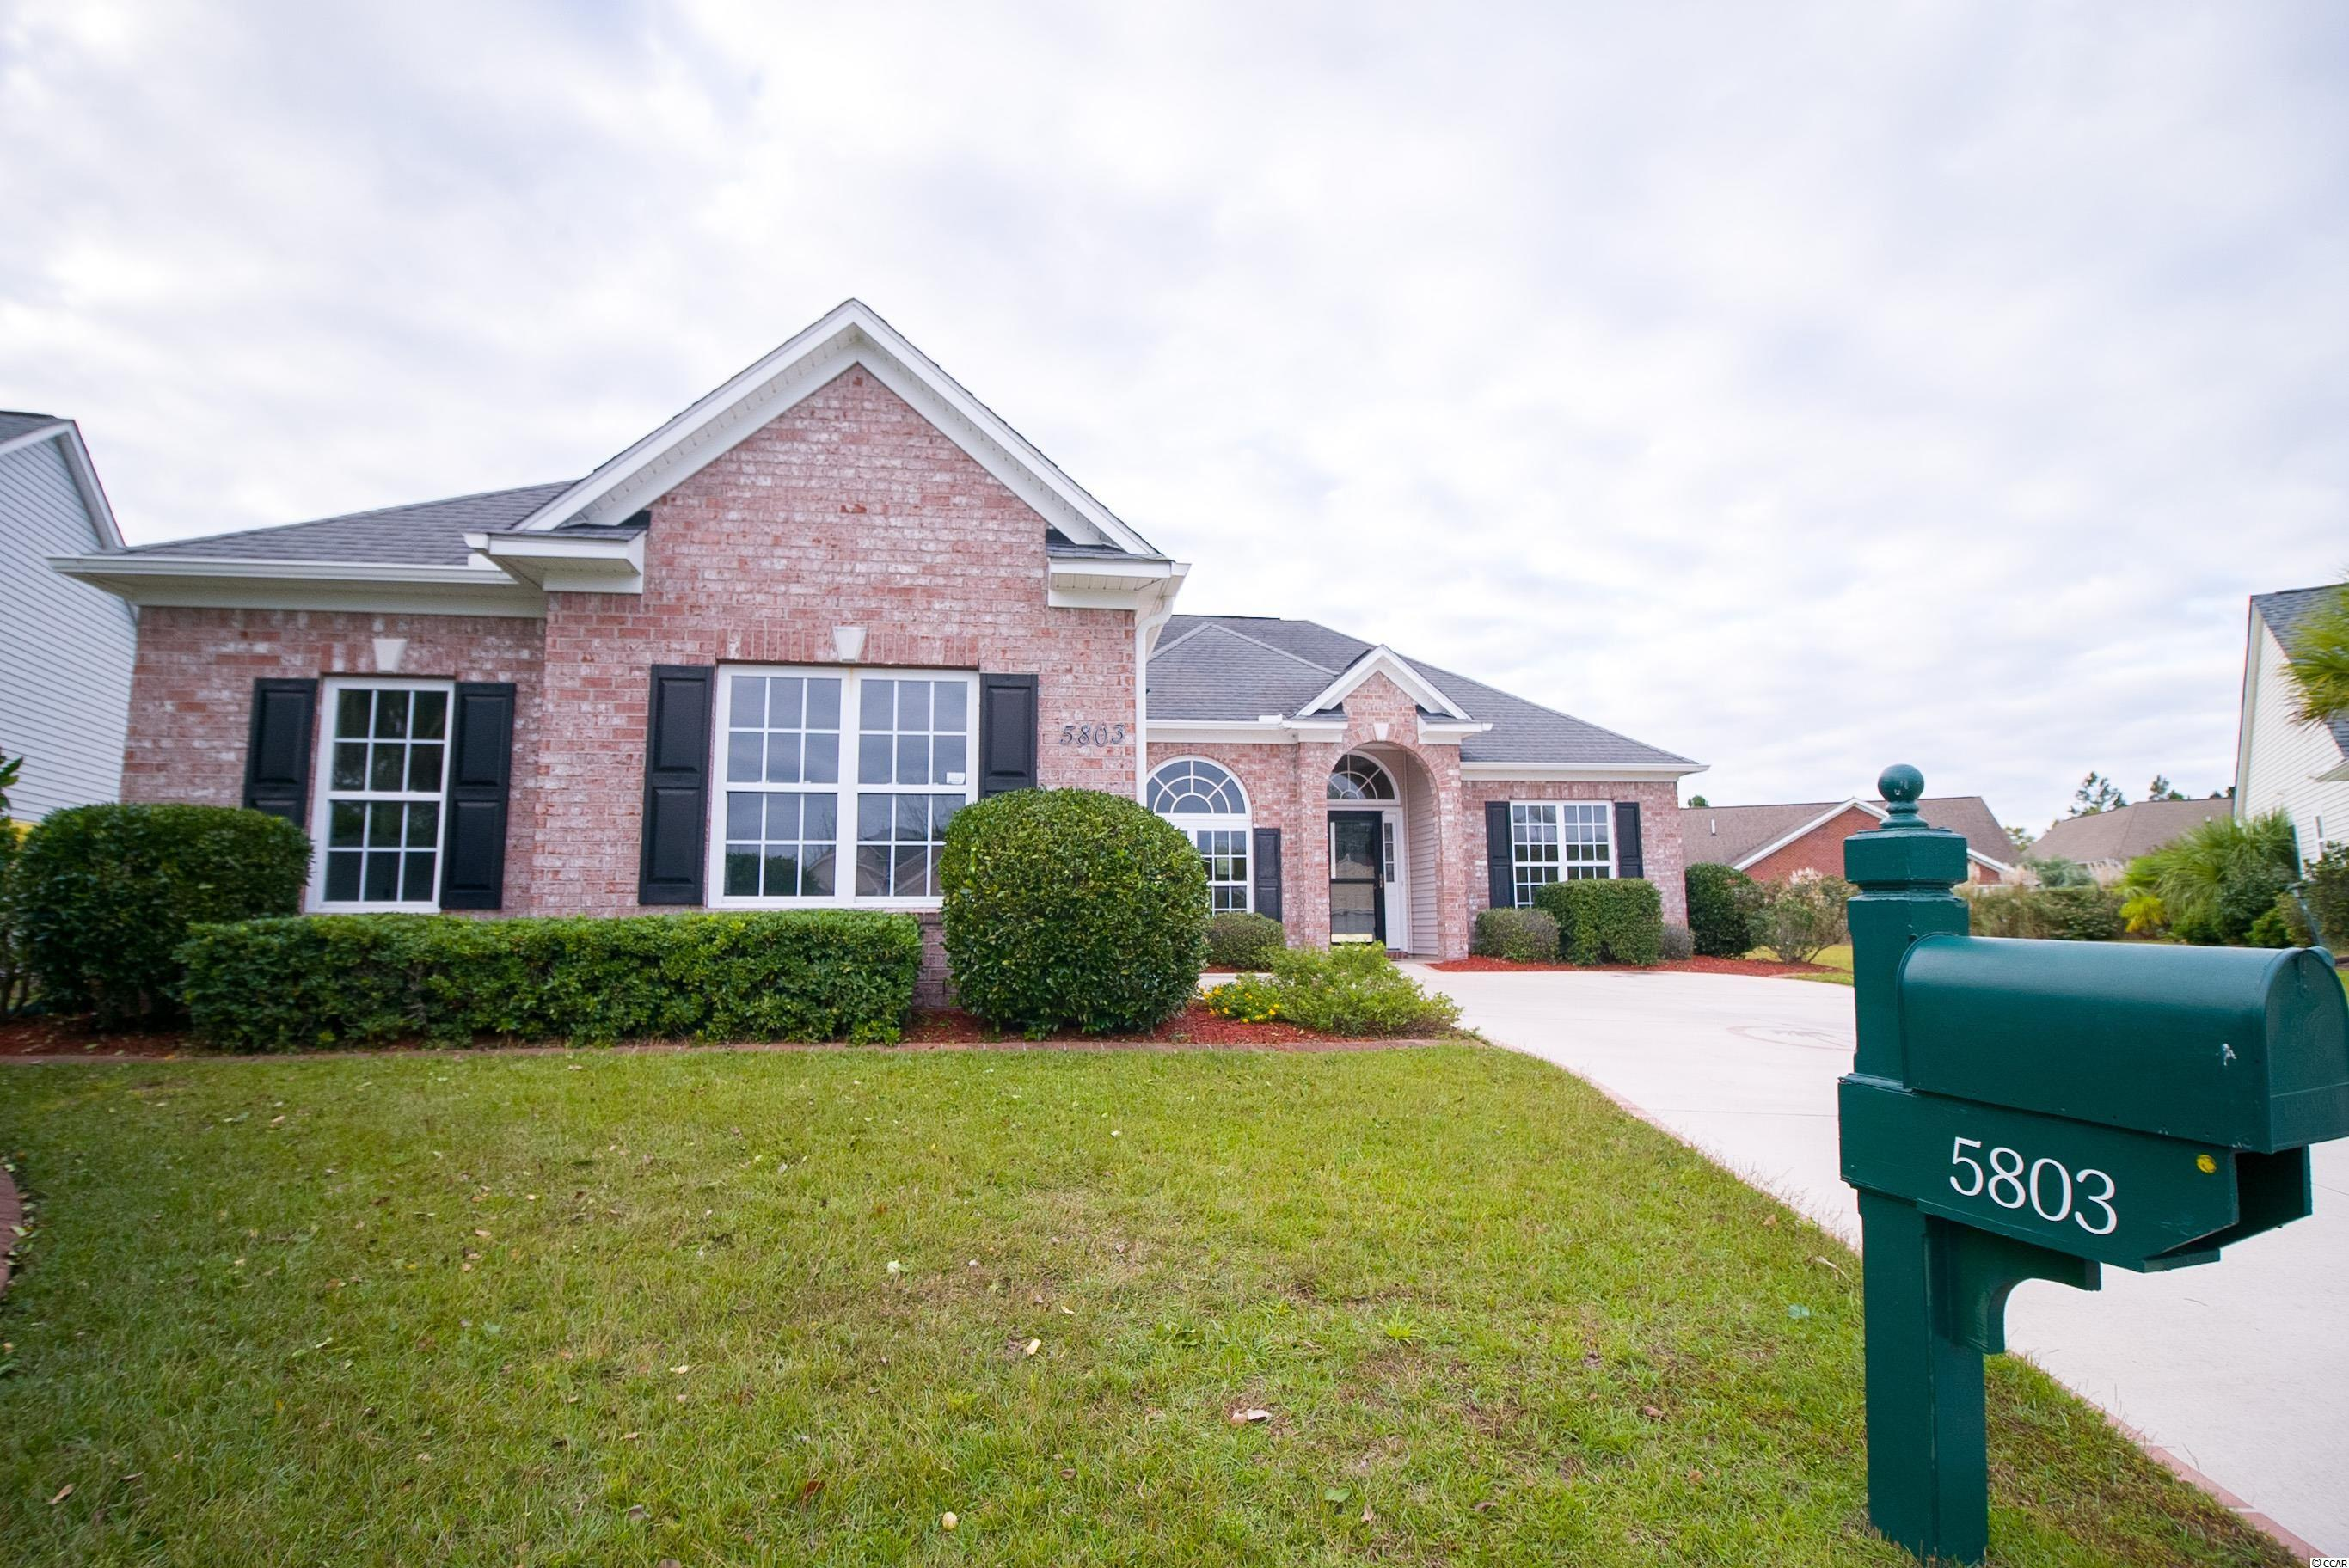 5803 Mossy Oaks Dr. North Myrtle Beach, SC 29582